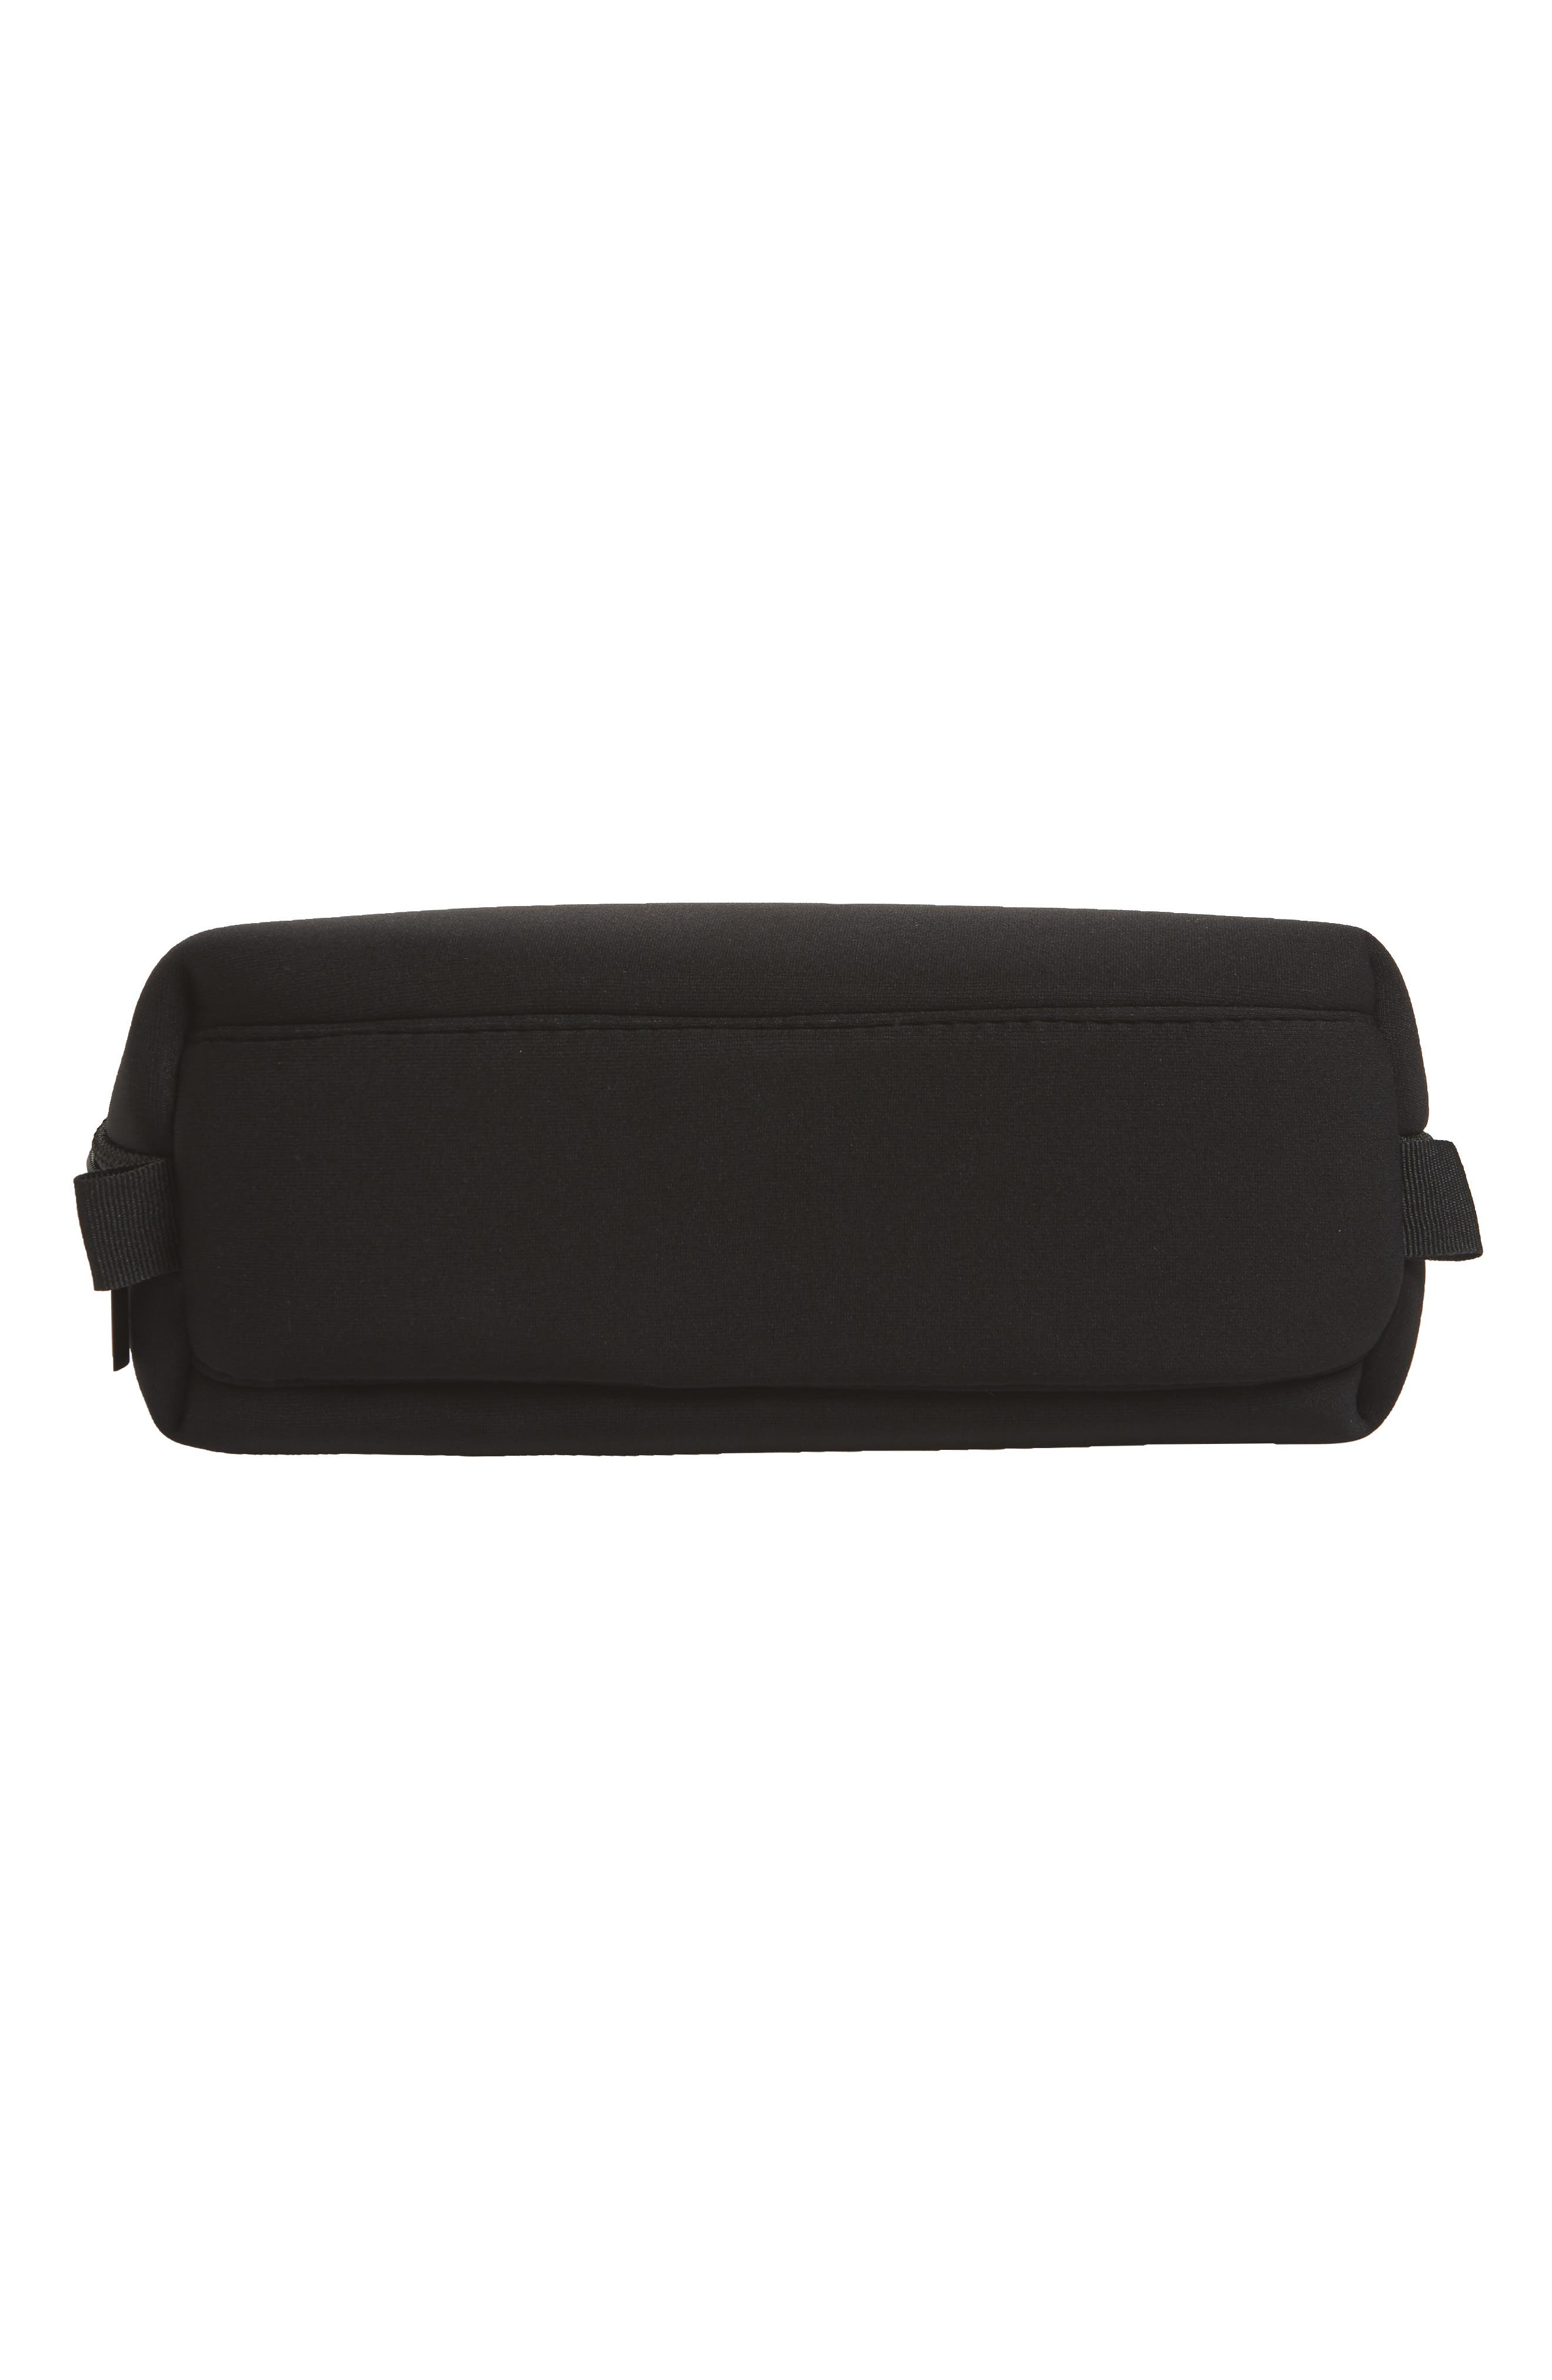 Curved Cosmetic Bag,                             Alternate thumbnail 5, color,                             BLACK